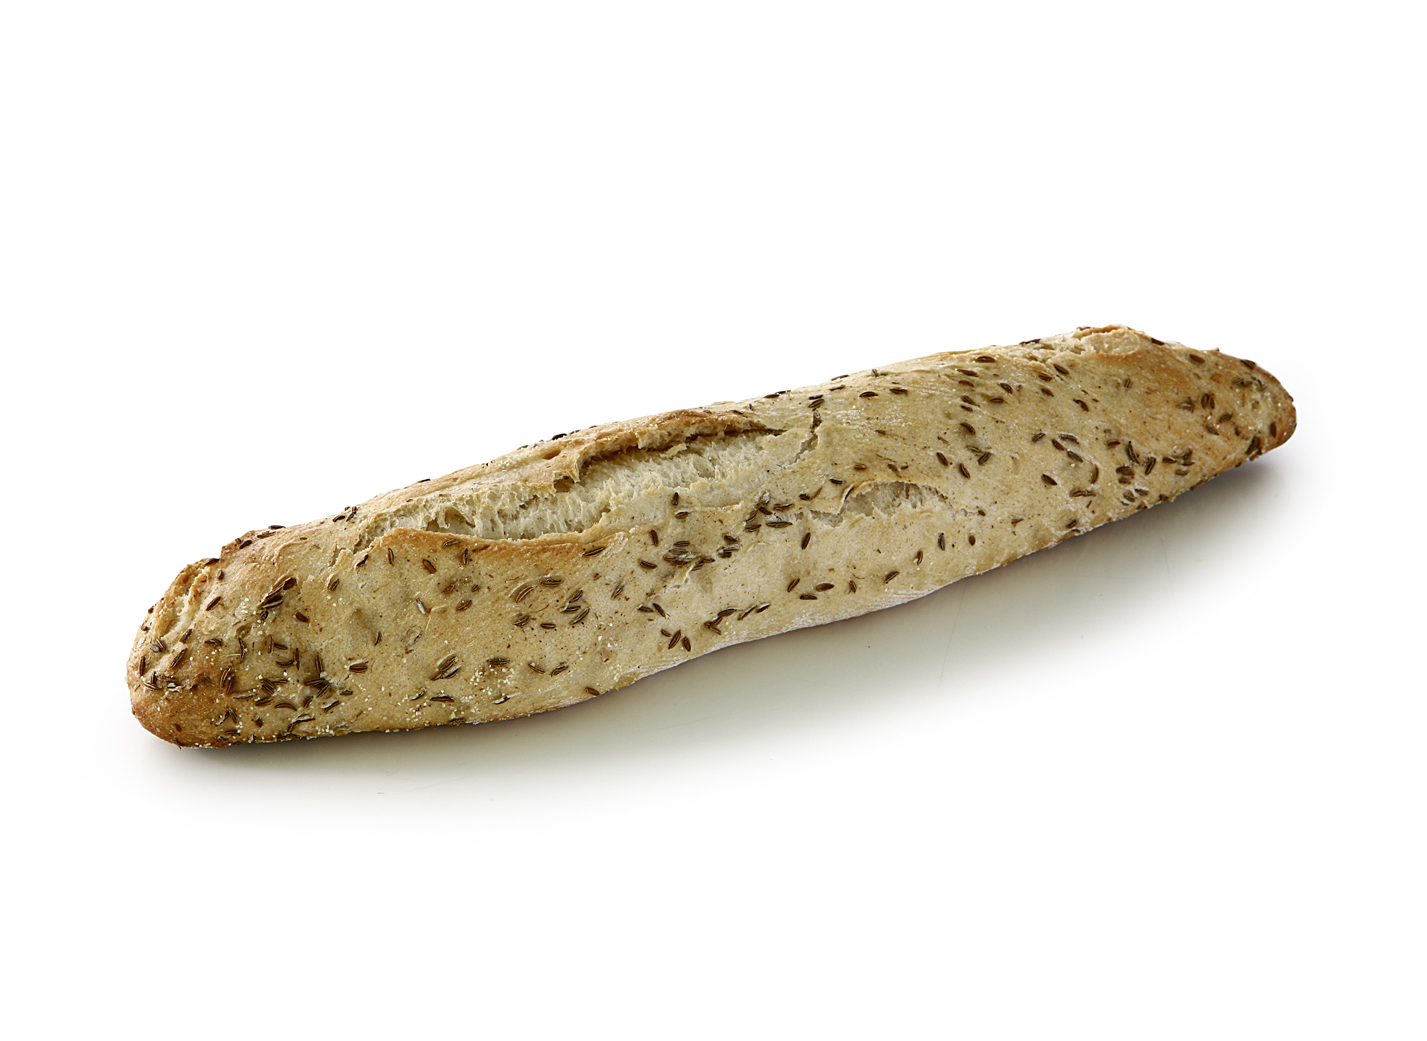 Baguette Swabian Style - Small wheat product with 0.3% caraway and natural sourdough